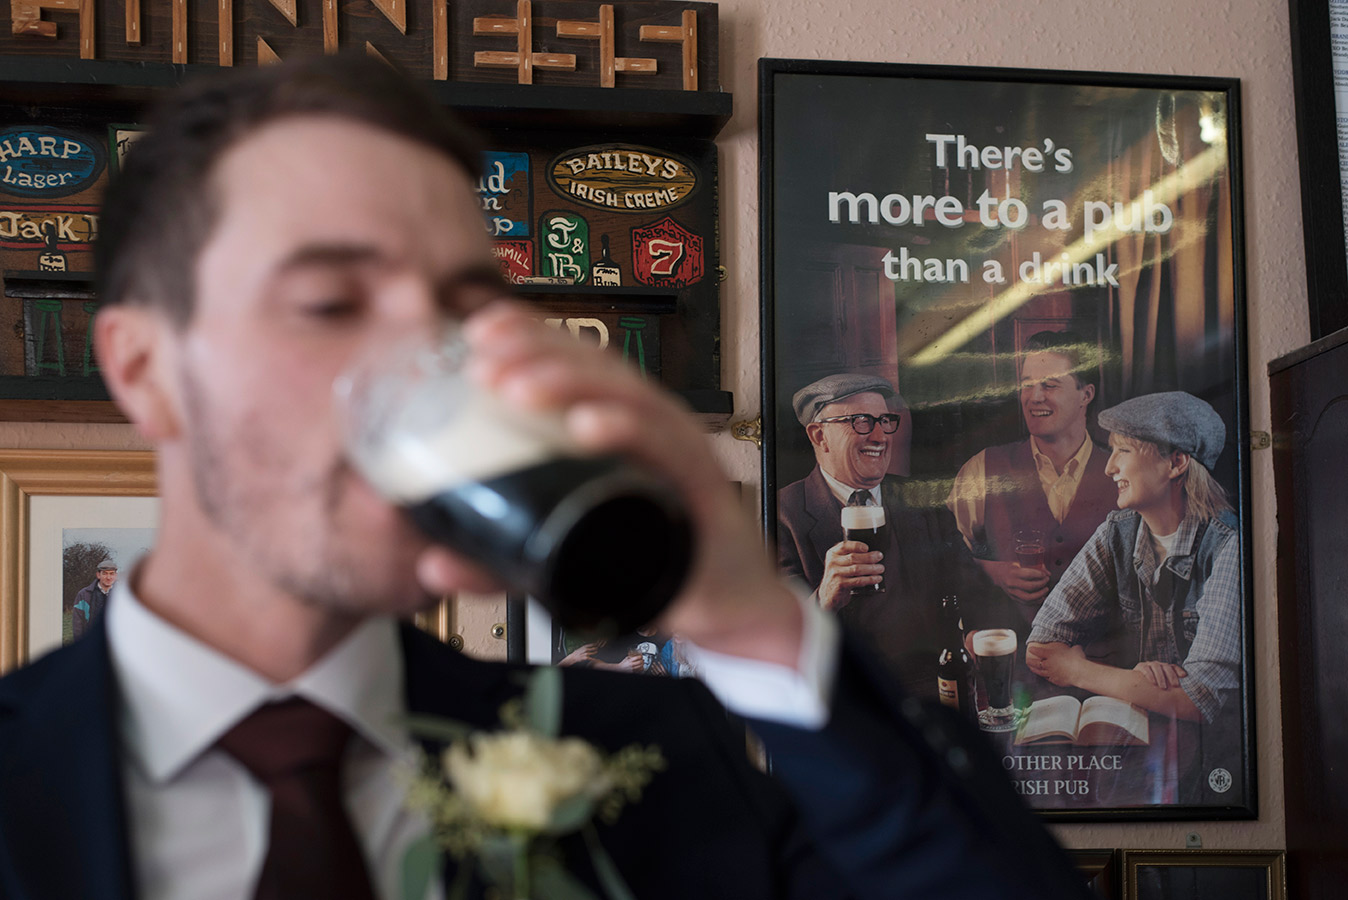 groom drinks guinness in pub on wedding day